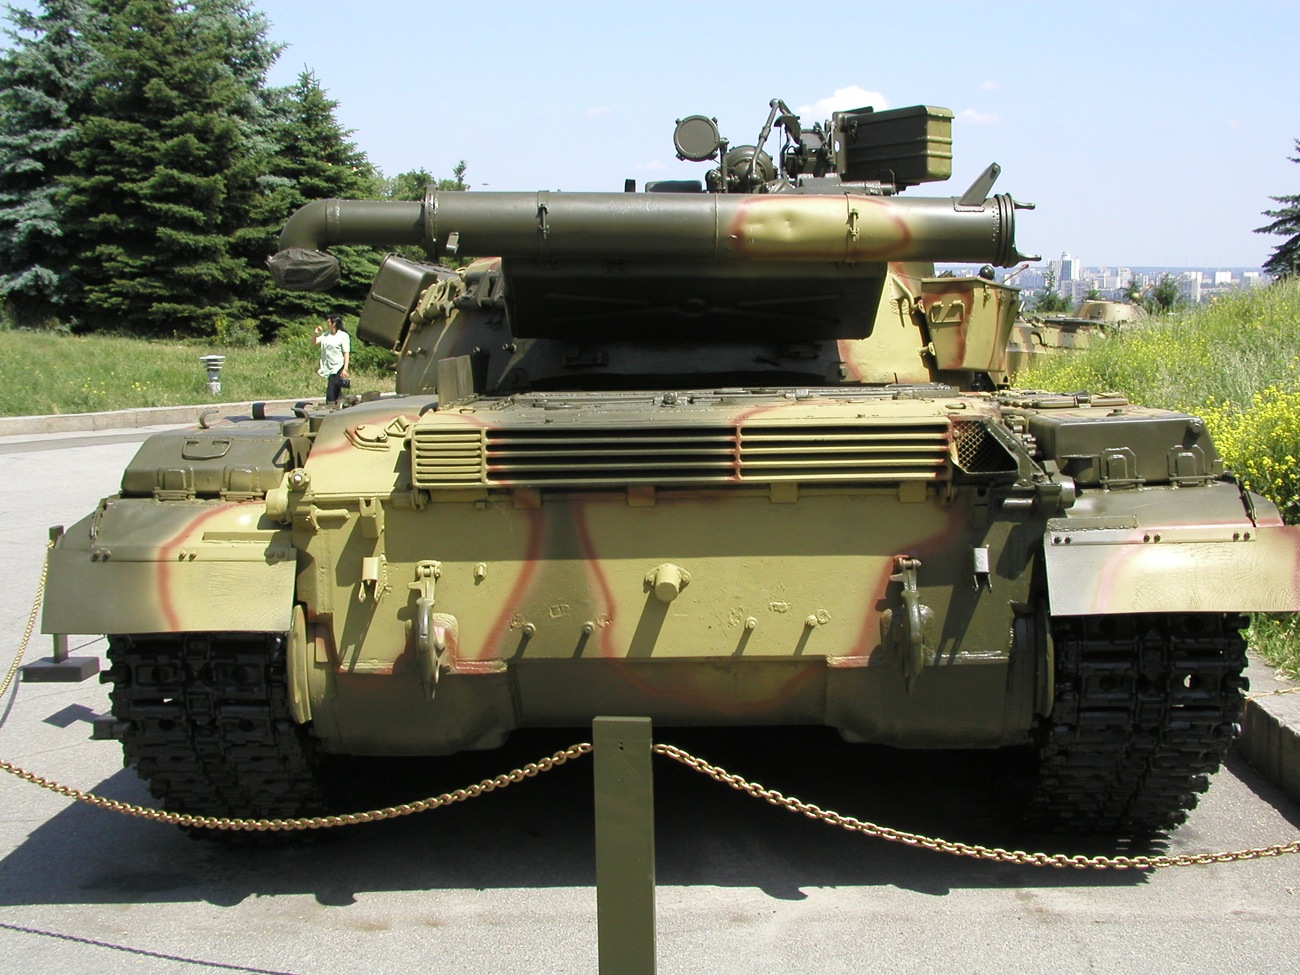 T-64_Kyiv_rear_view.JPG